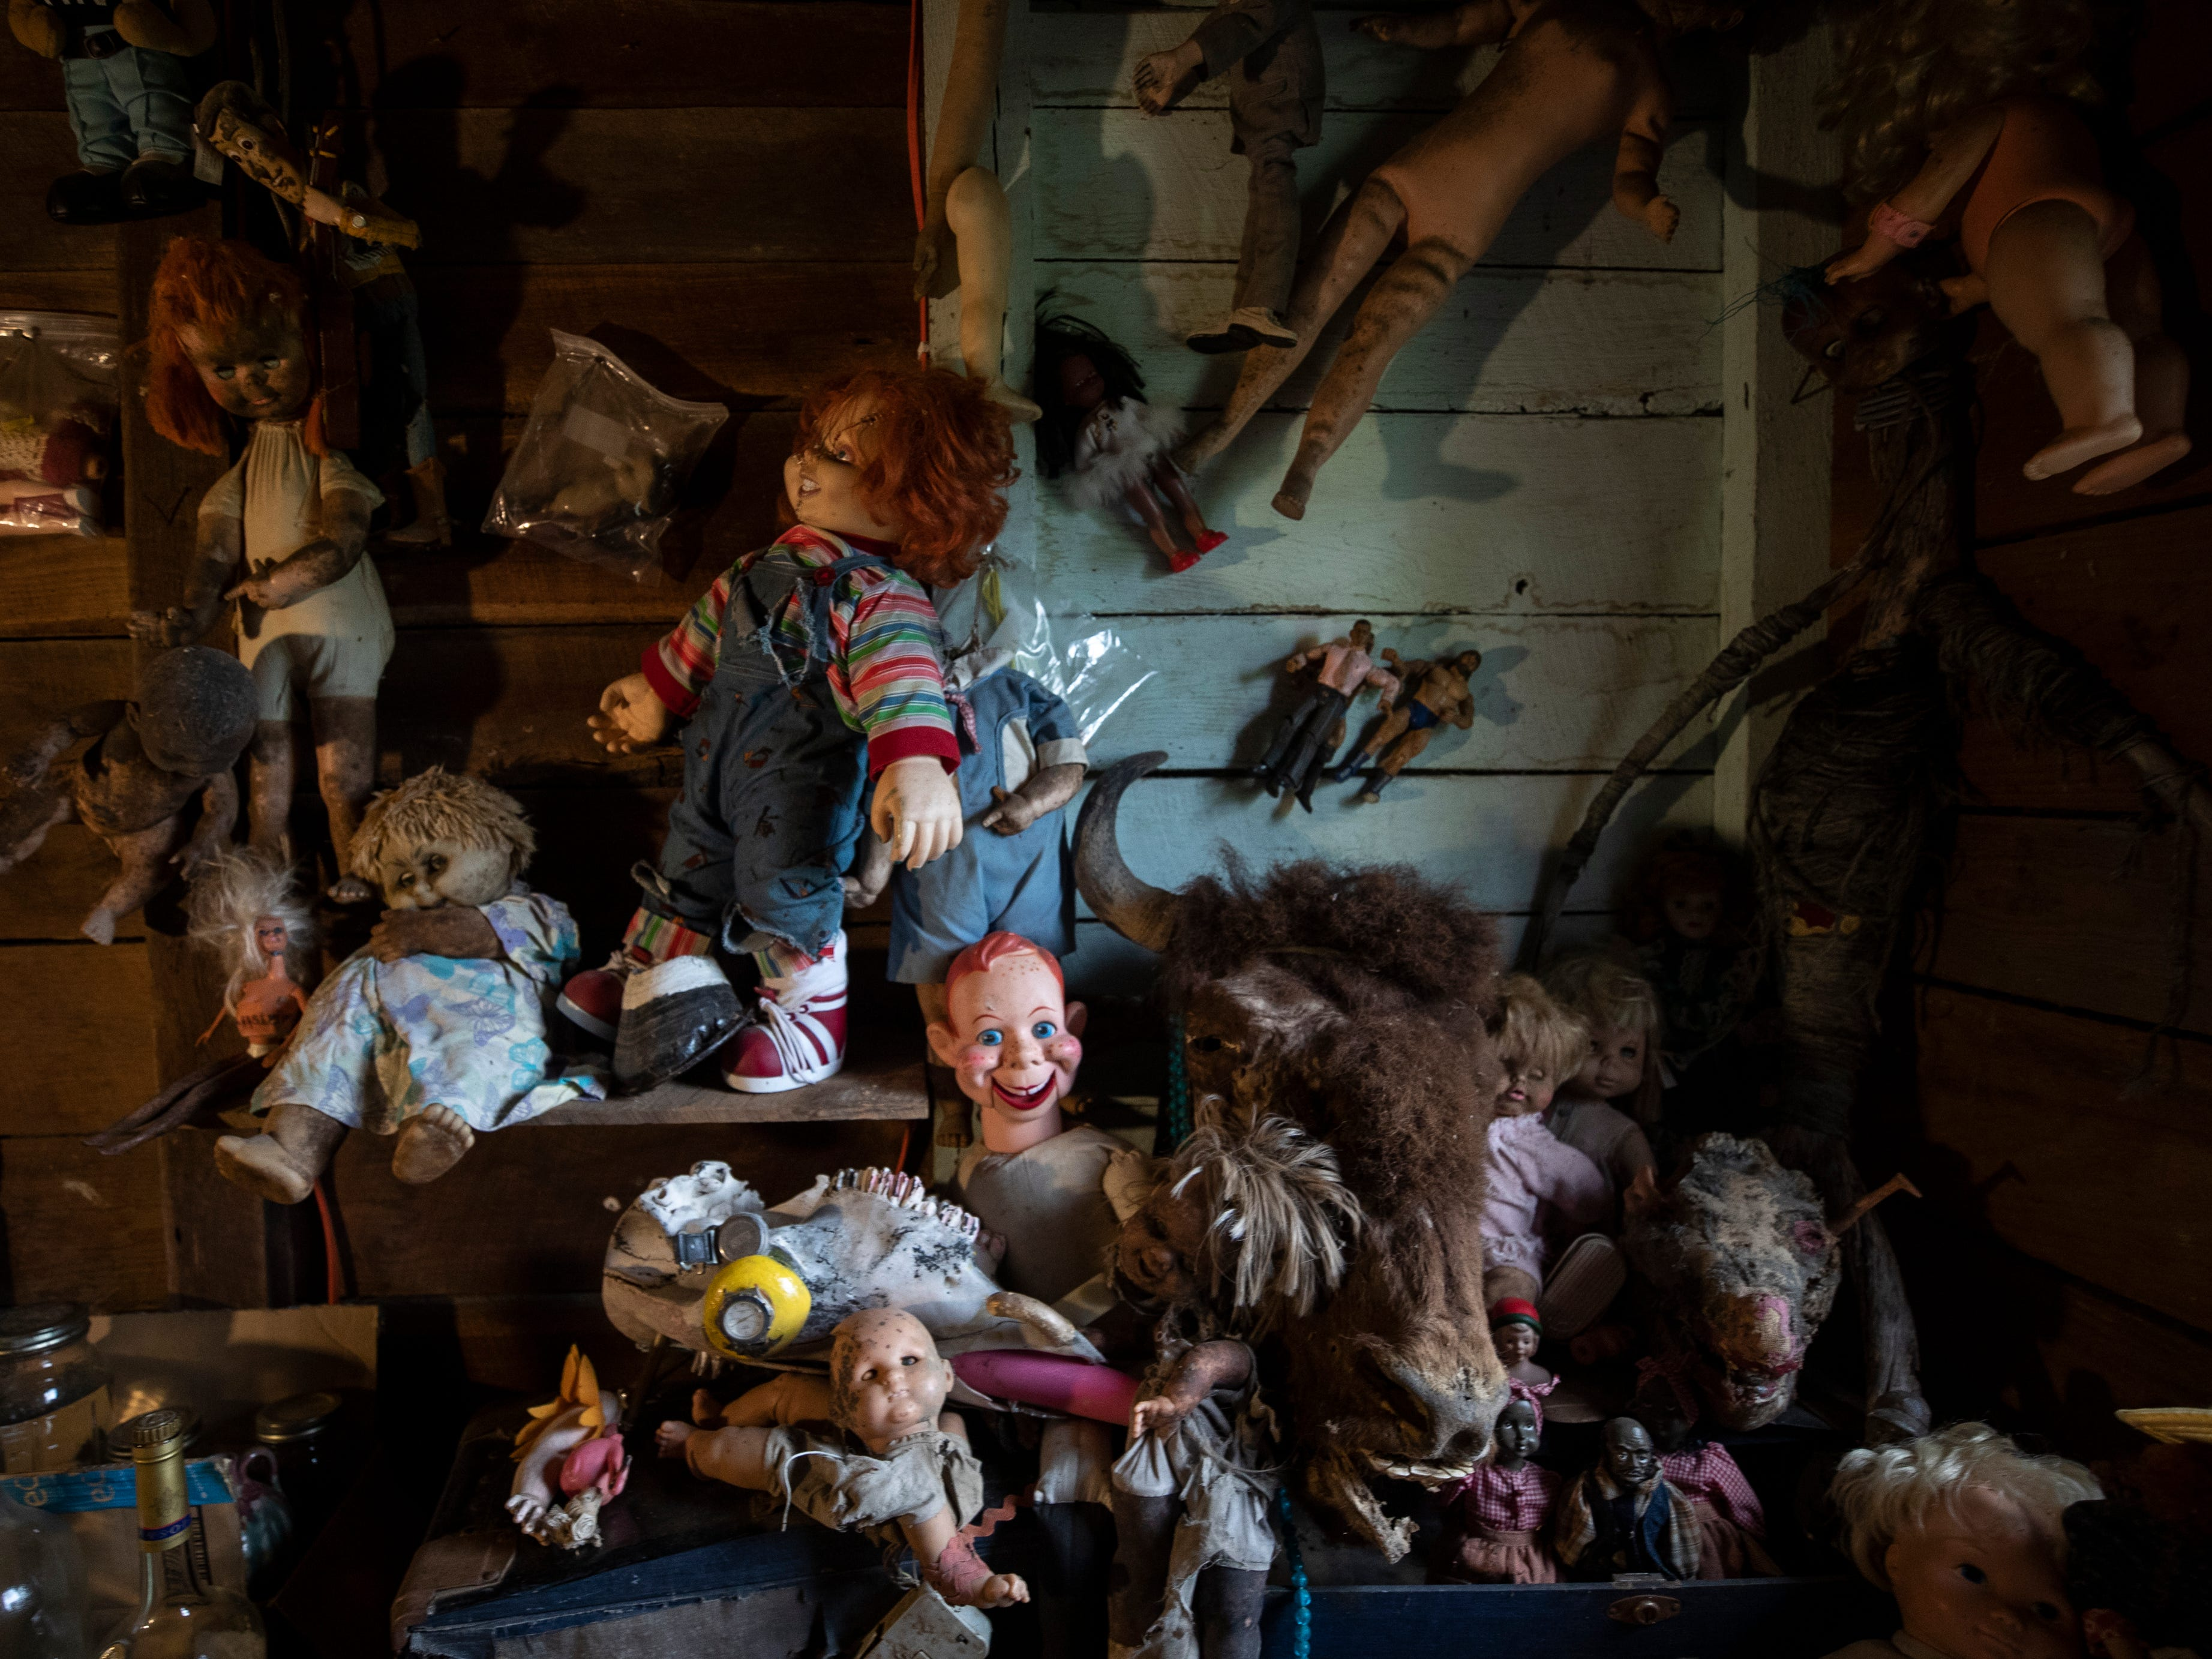 A group of dolls in the Curation Facility #1, at the Home for Wayward Babydolls. April 19, 2019